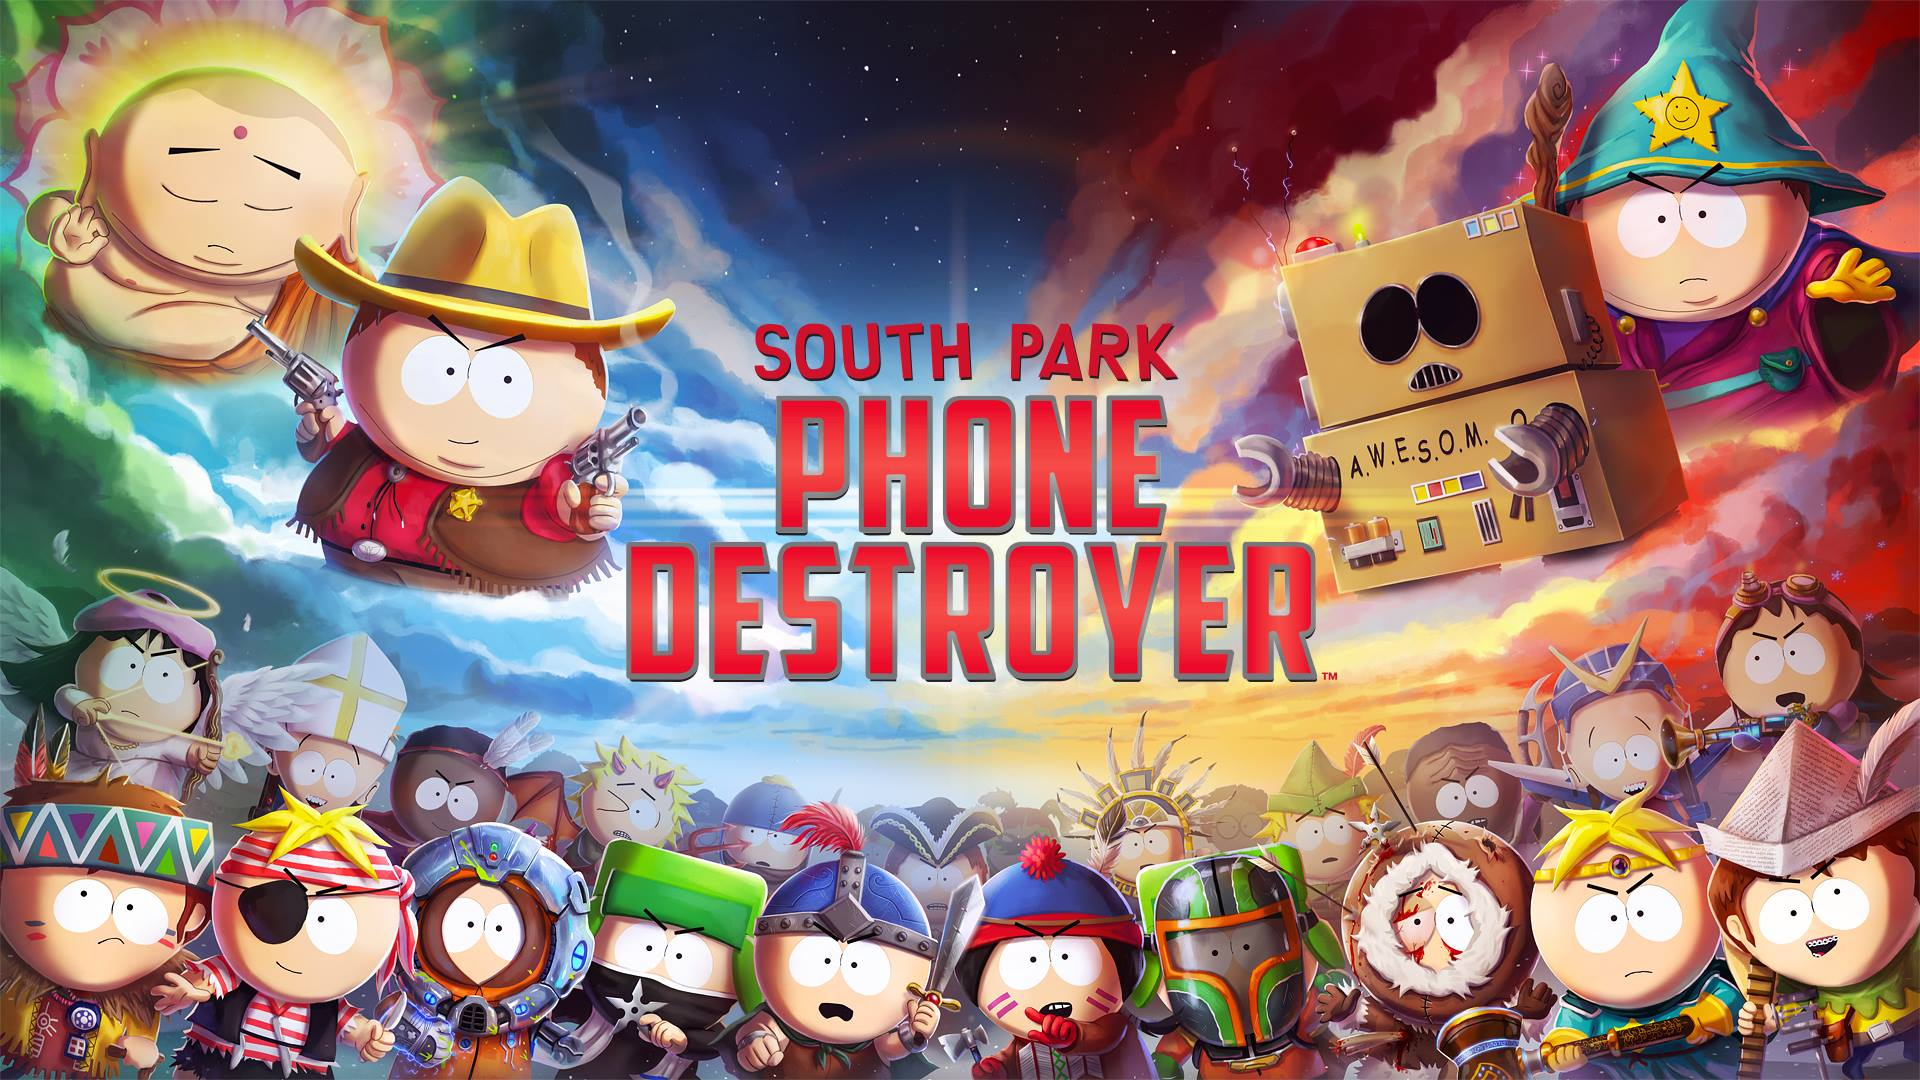 Ubisoft annuncia South Park: Phone Destroyer